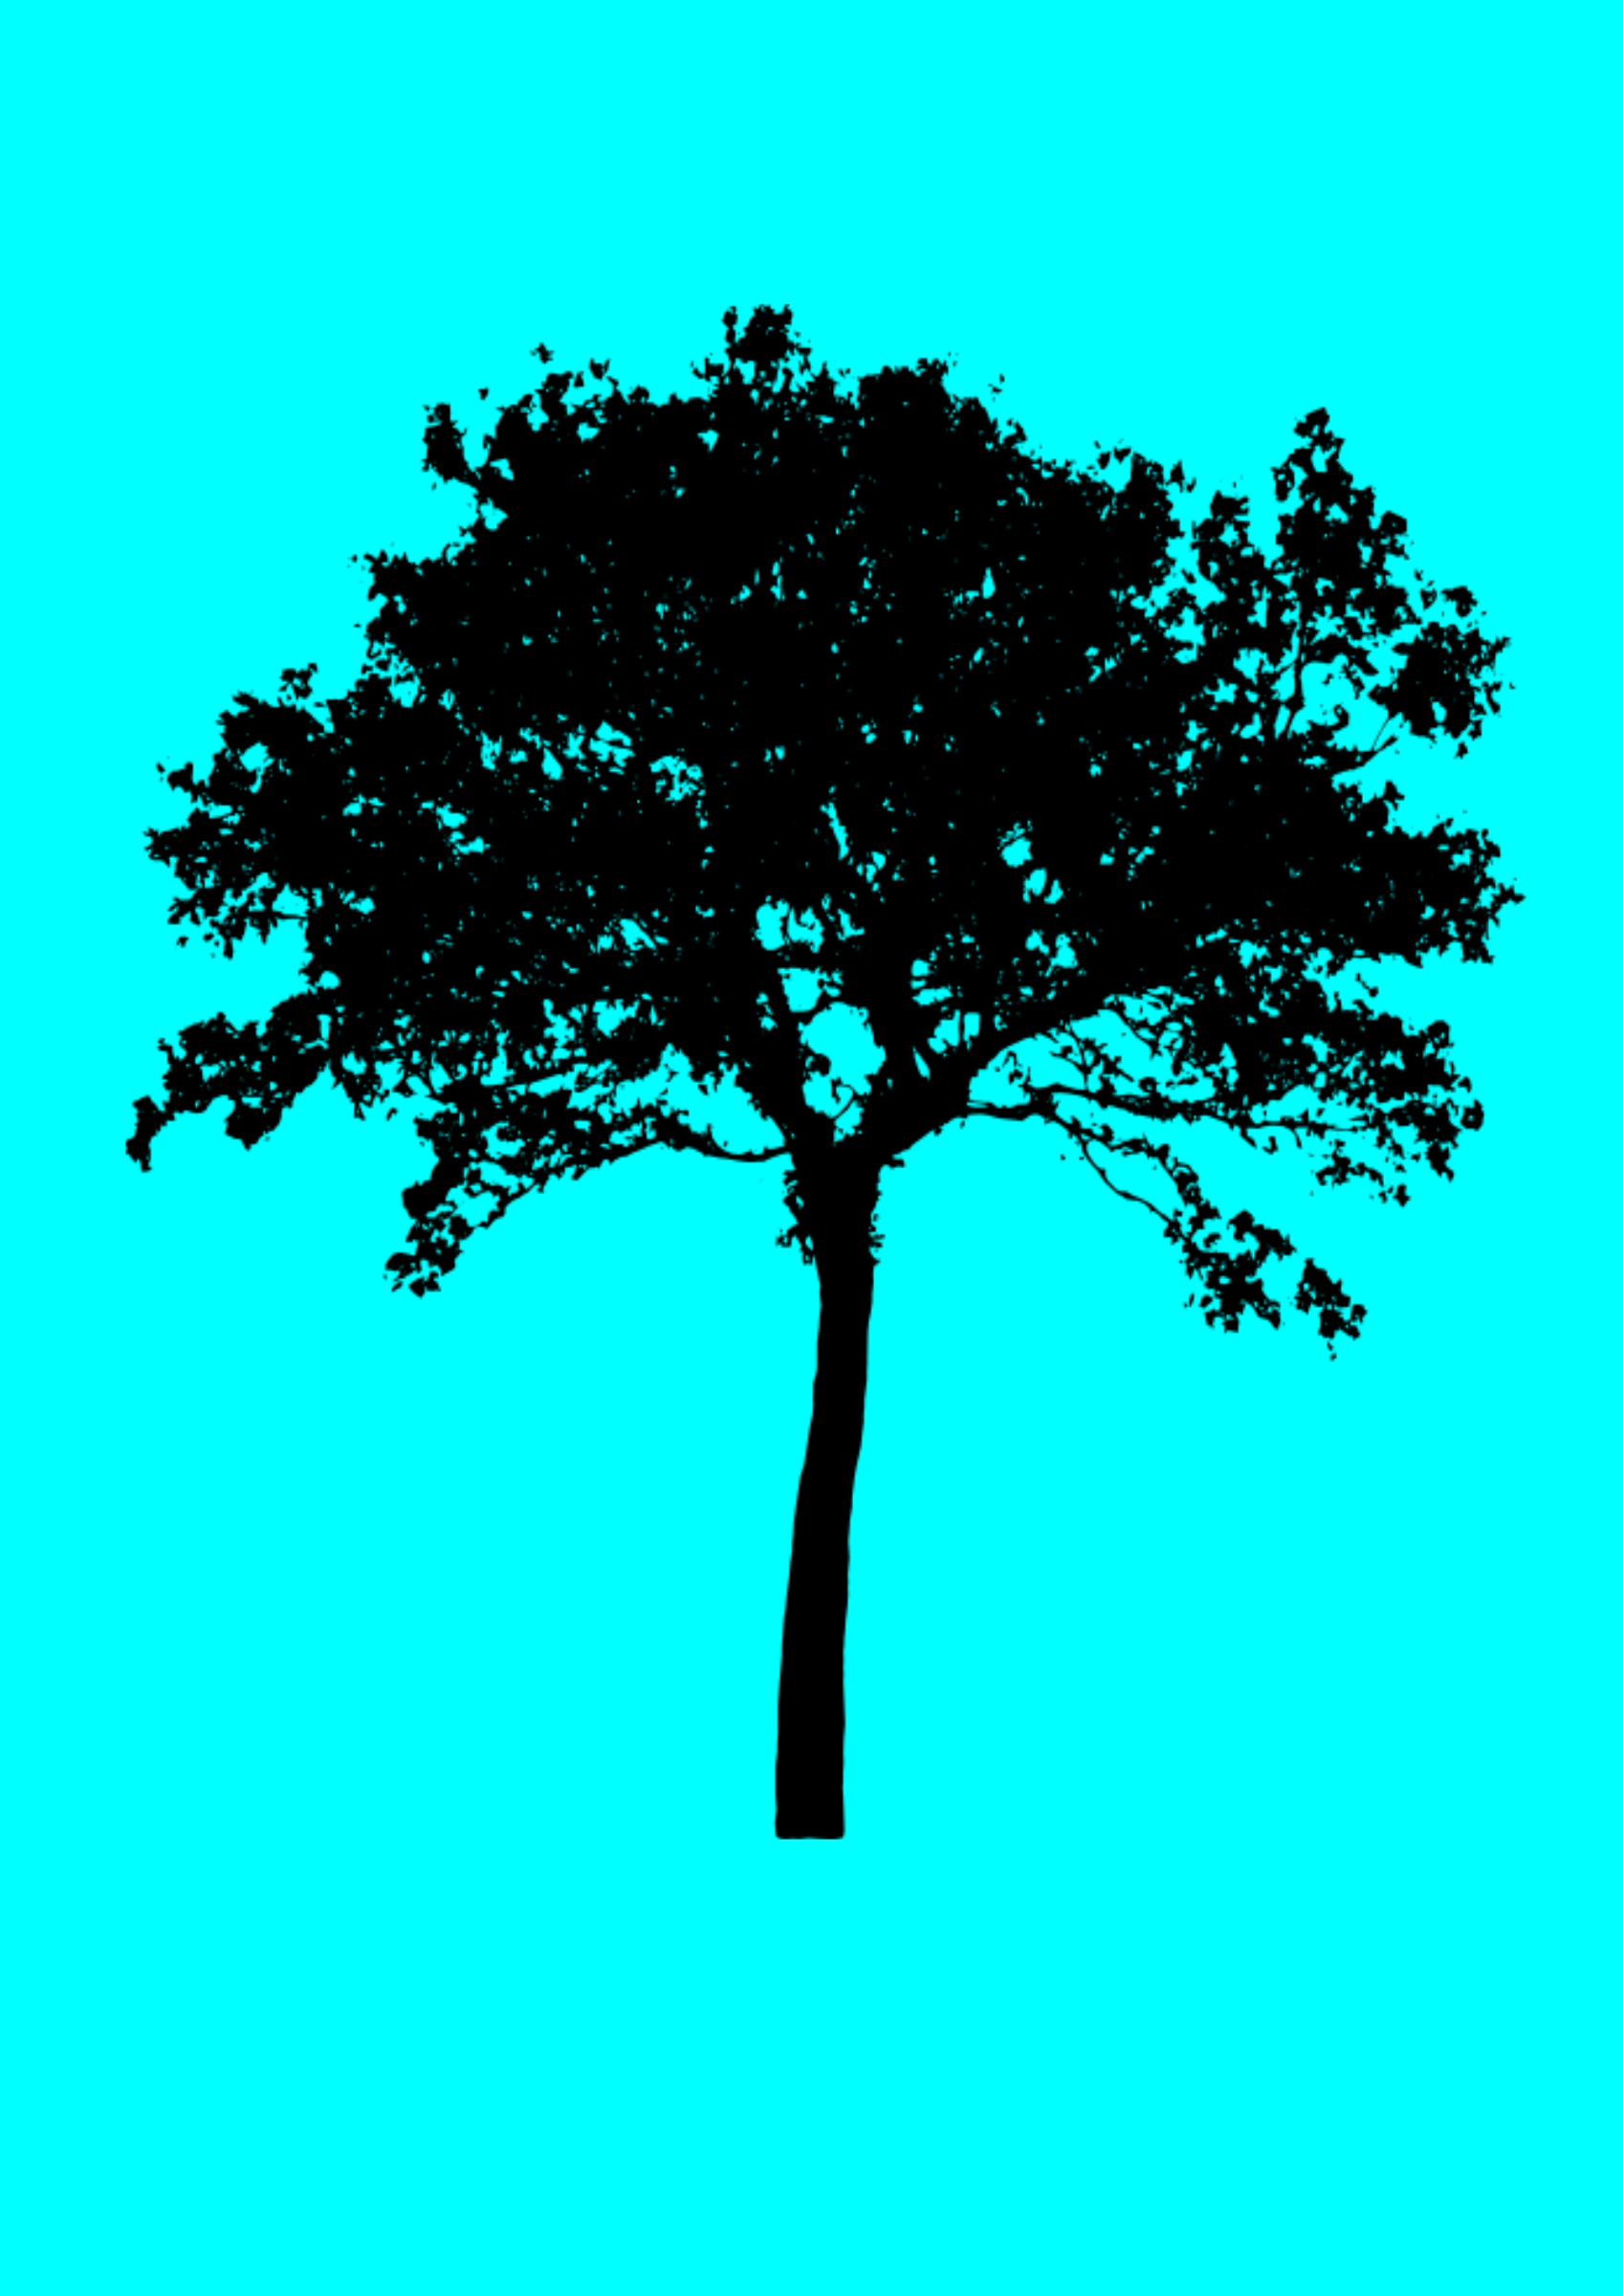 Tree silhouette by gmendez101